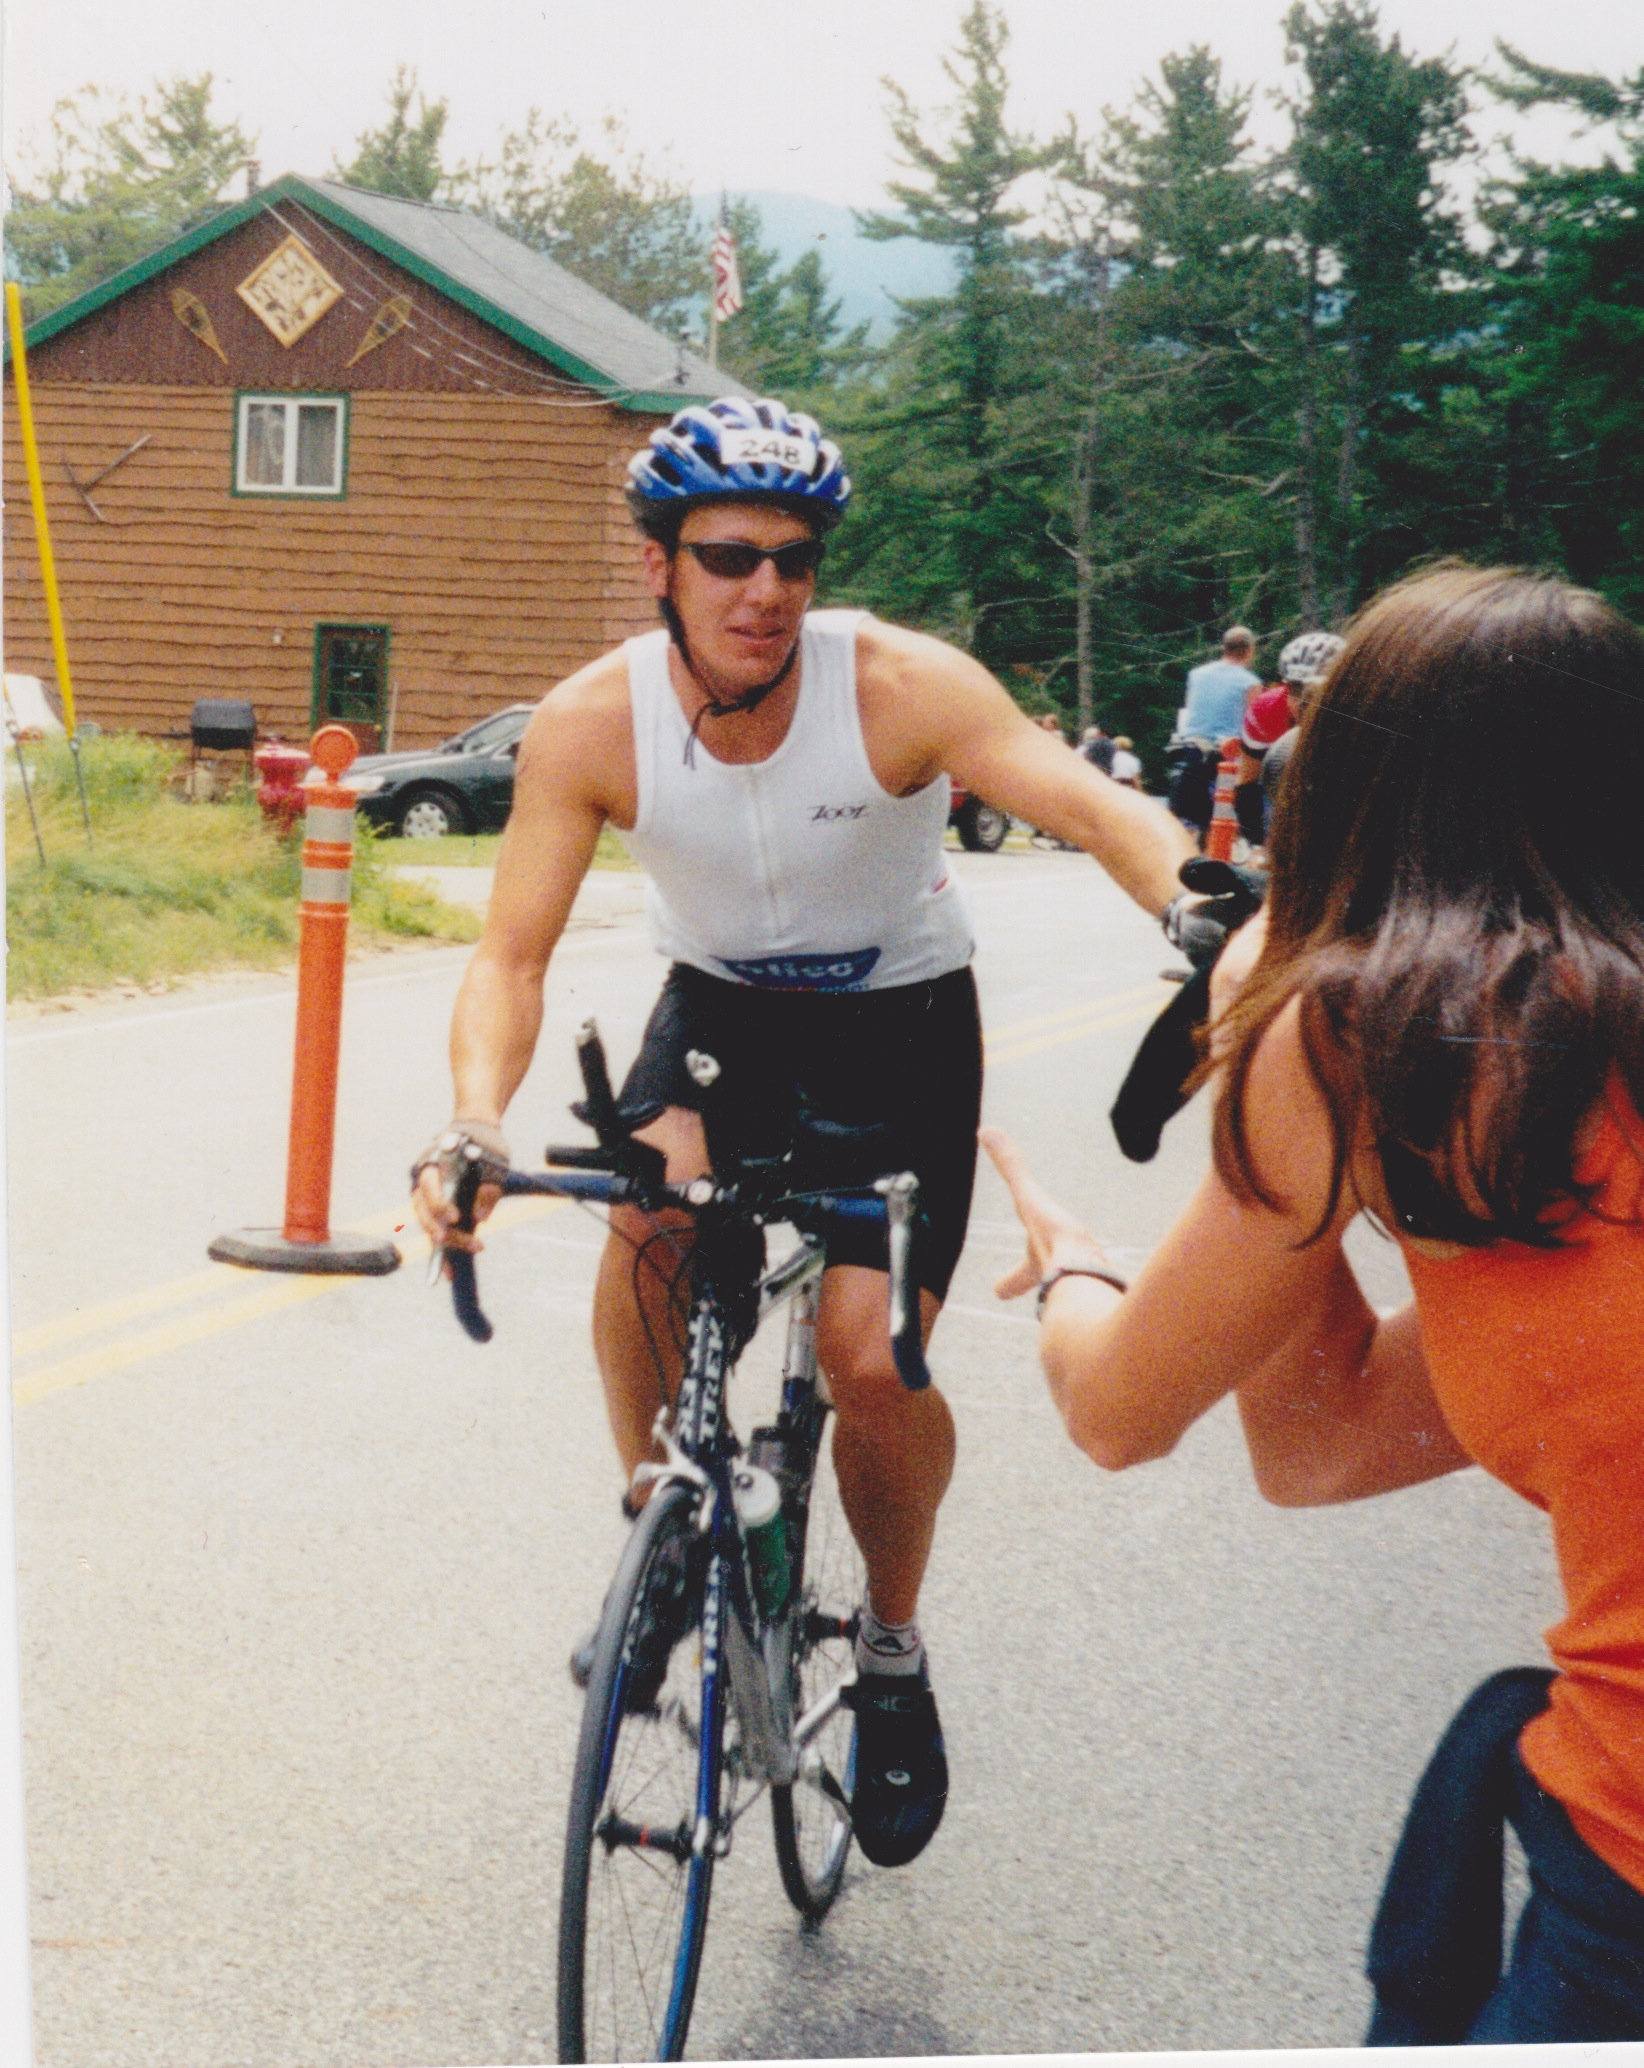 My brother Peter laying it down on the bike course at Ironman Lake Placid, 2004.